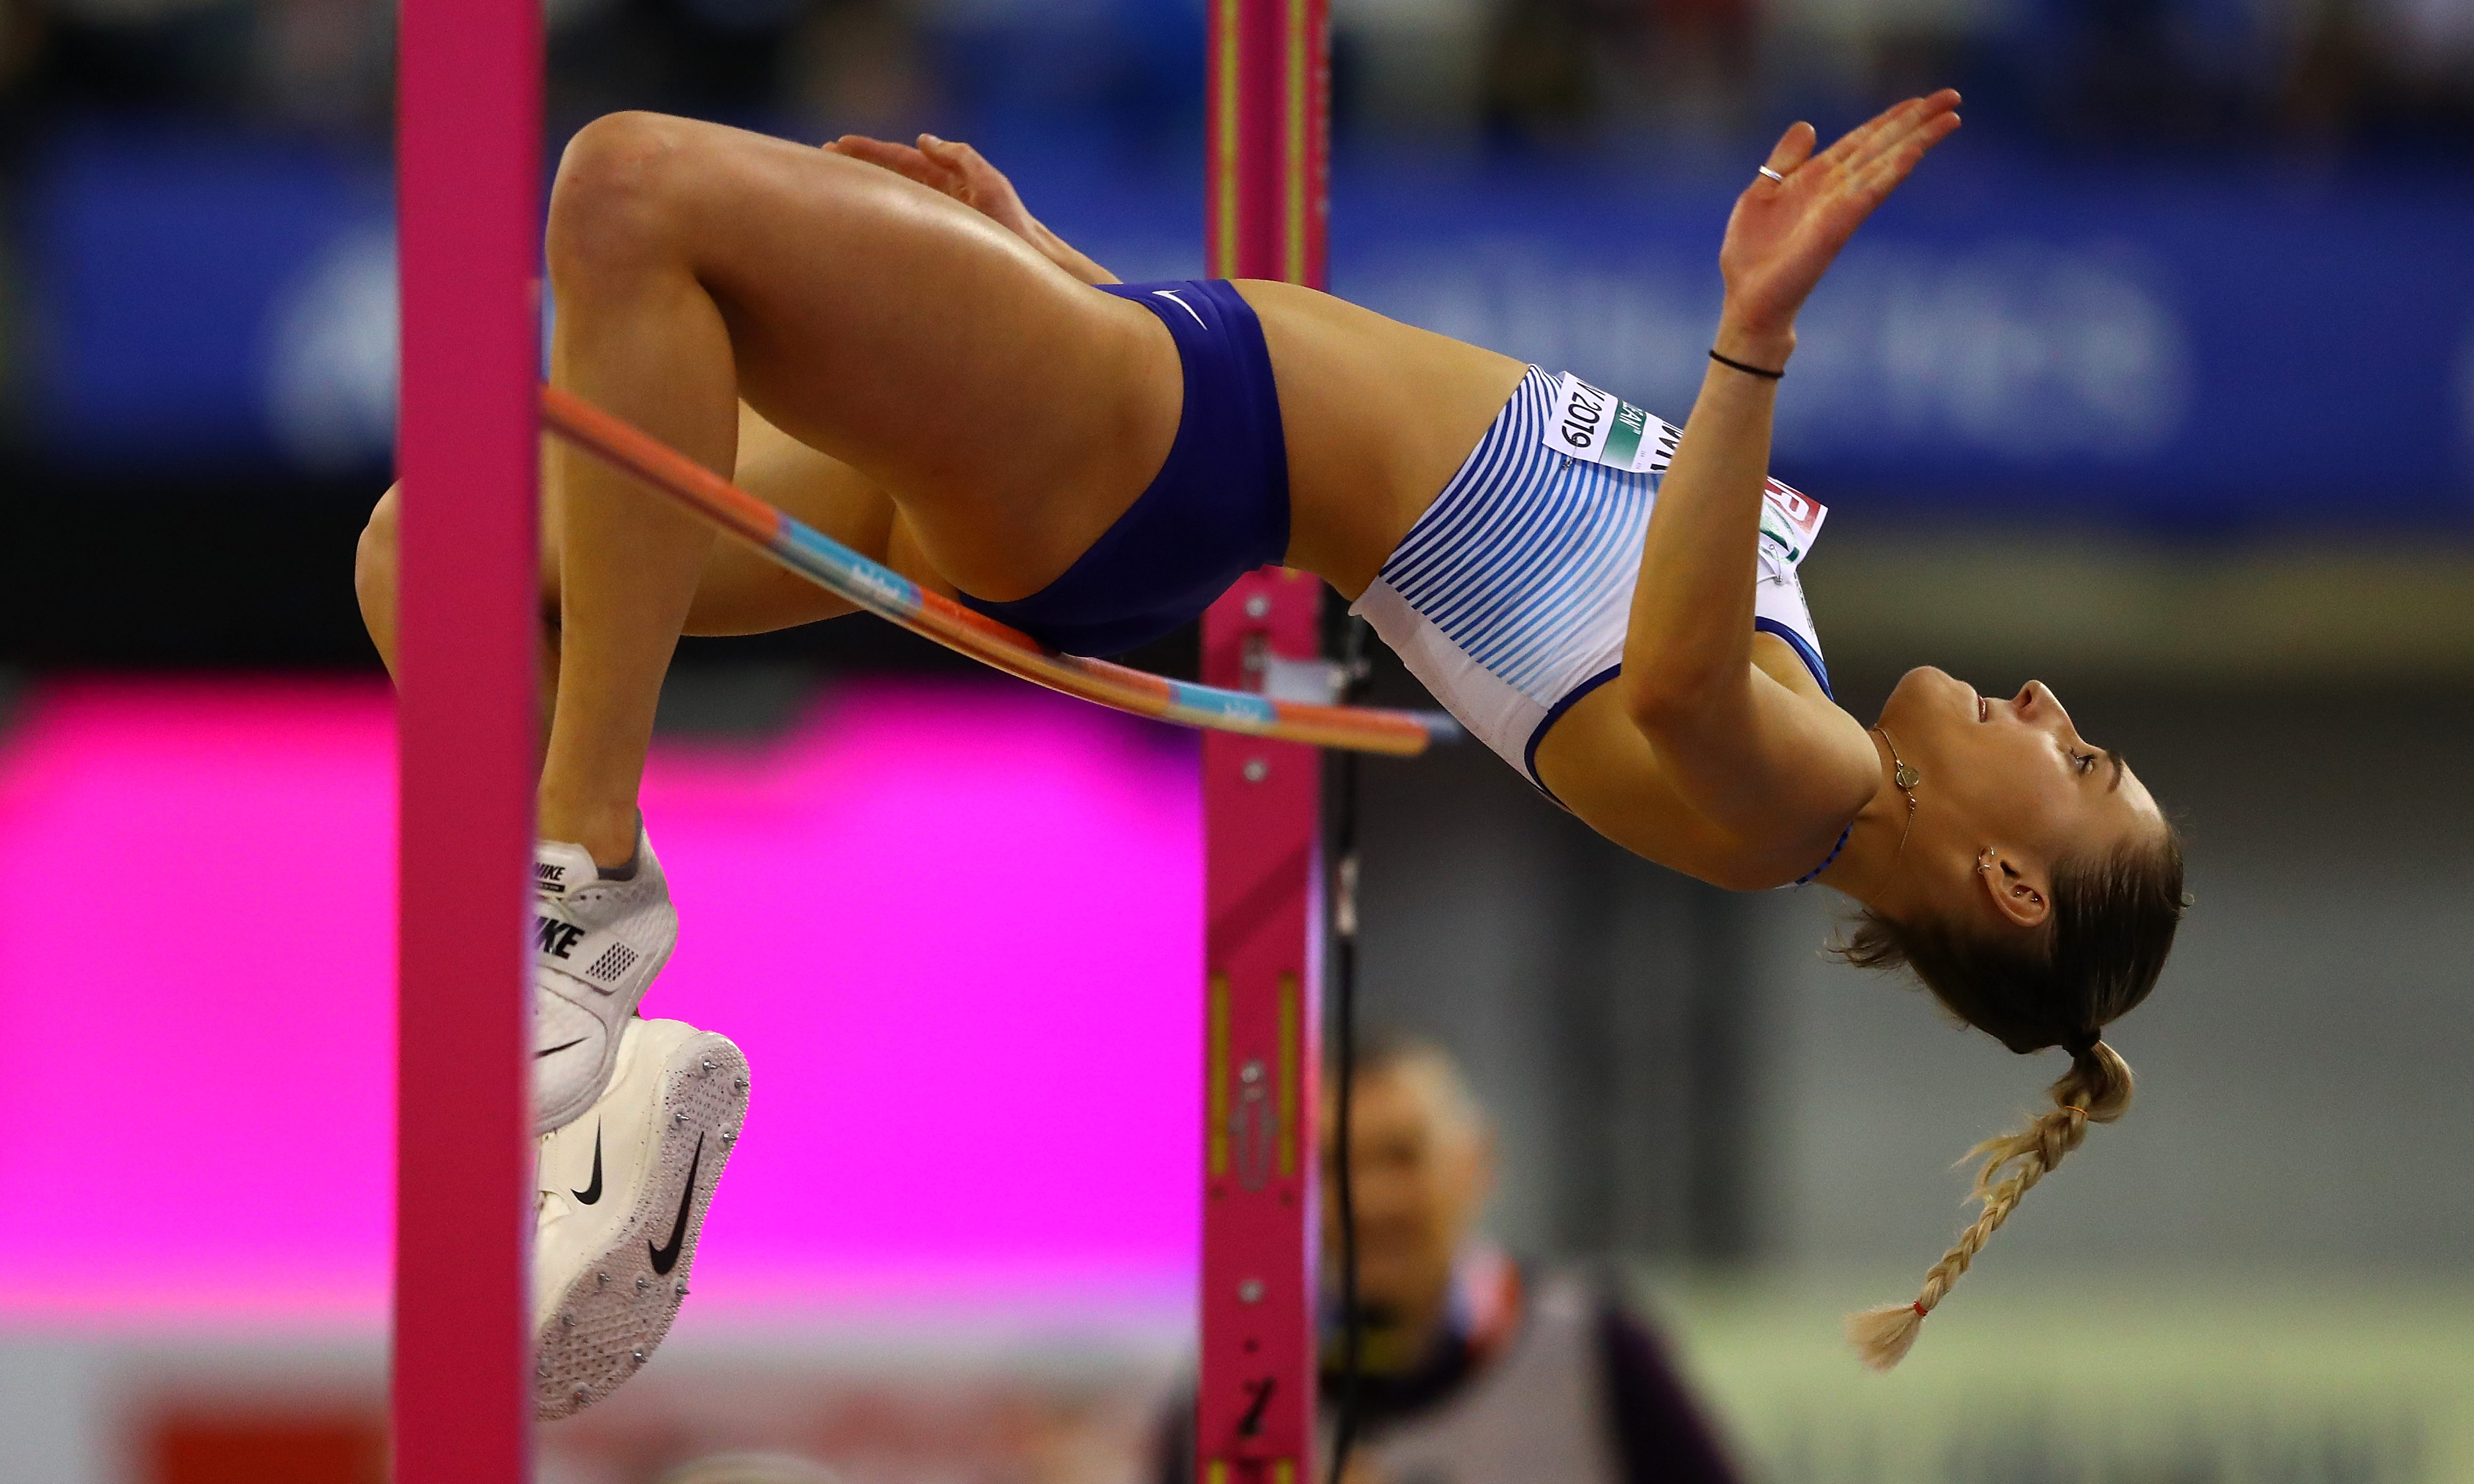 Niamh Emerson of Great Britain in action during the women's pentathlon high jump on day one of the 2019 European Athletics Indoor Championships at Emirates Arena on March 1, 2019 in Glasgow.